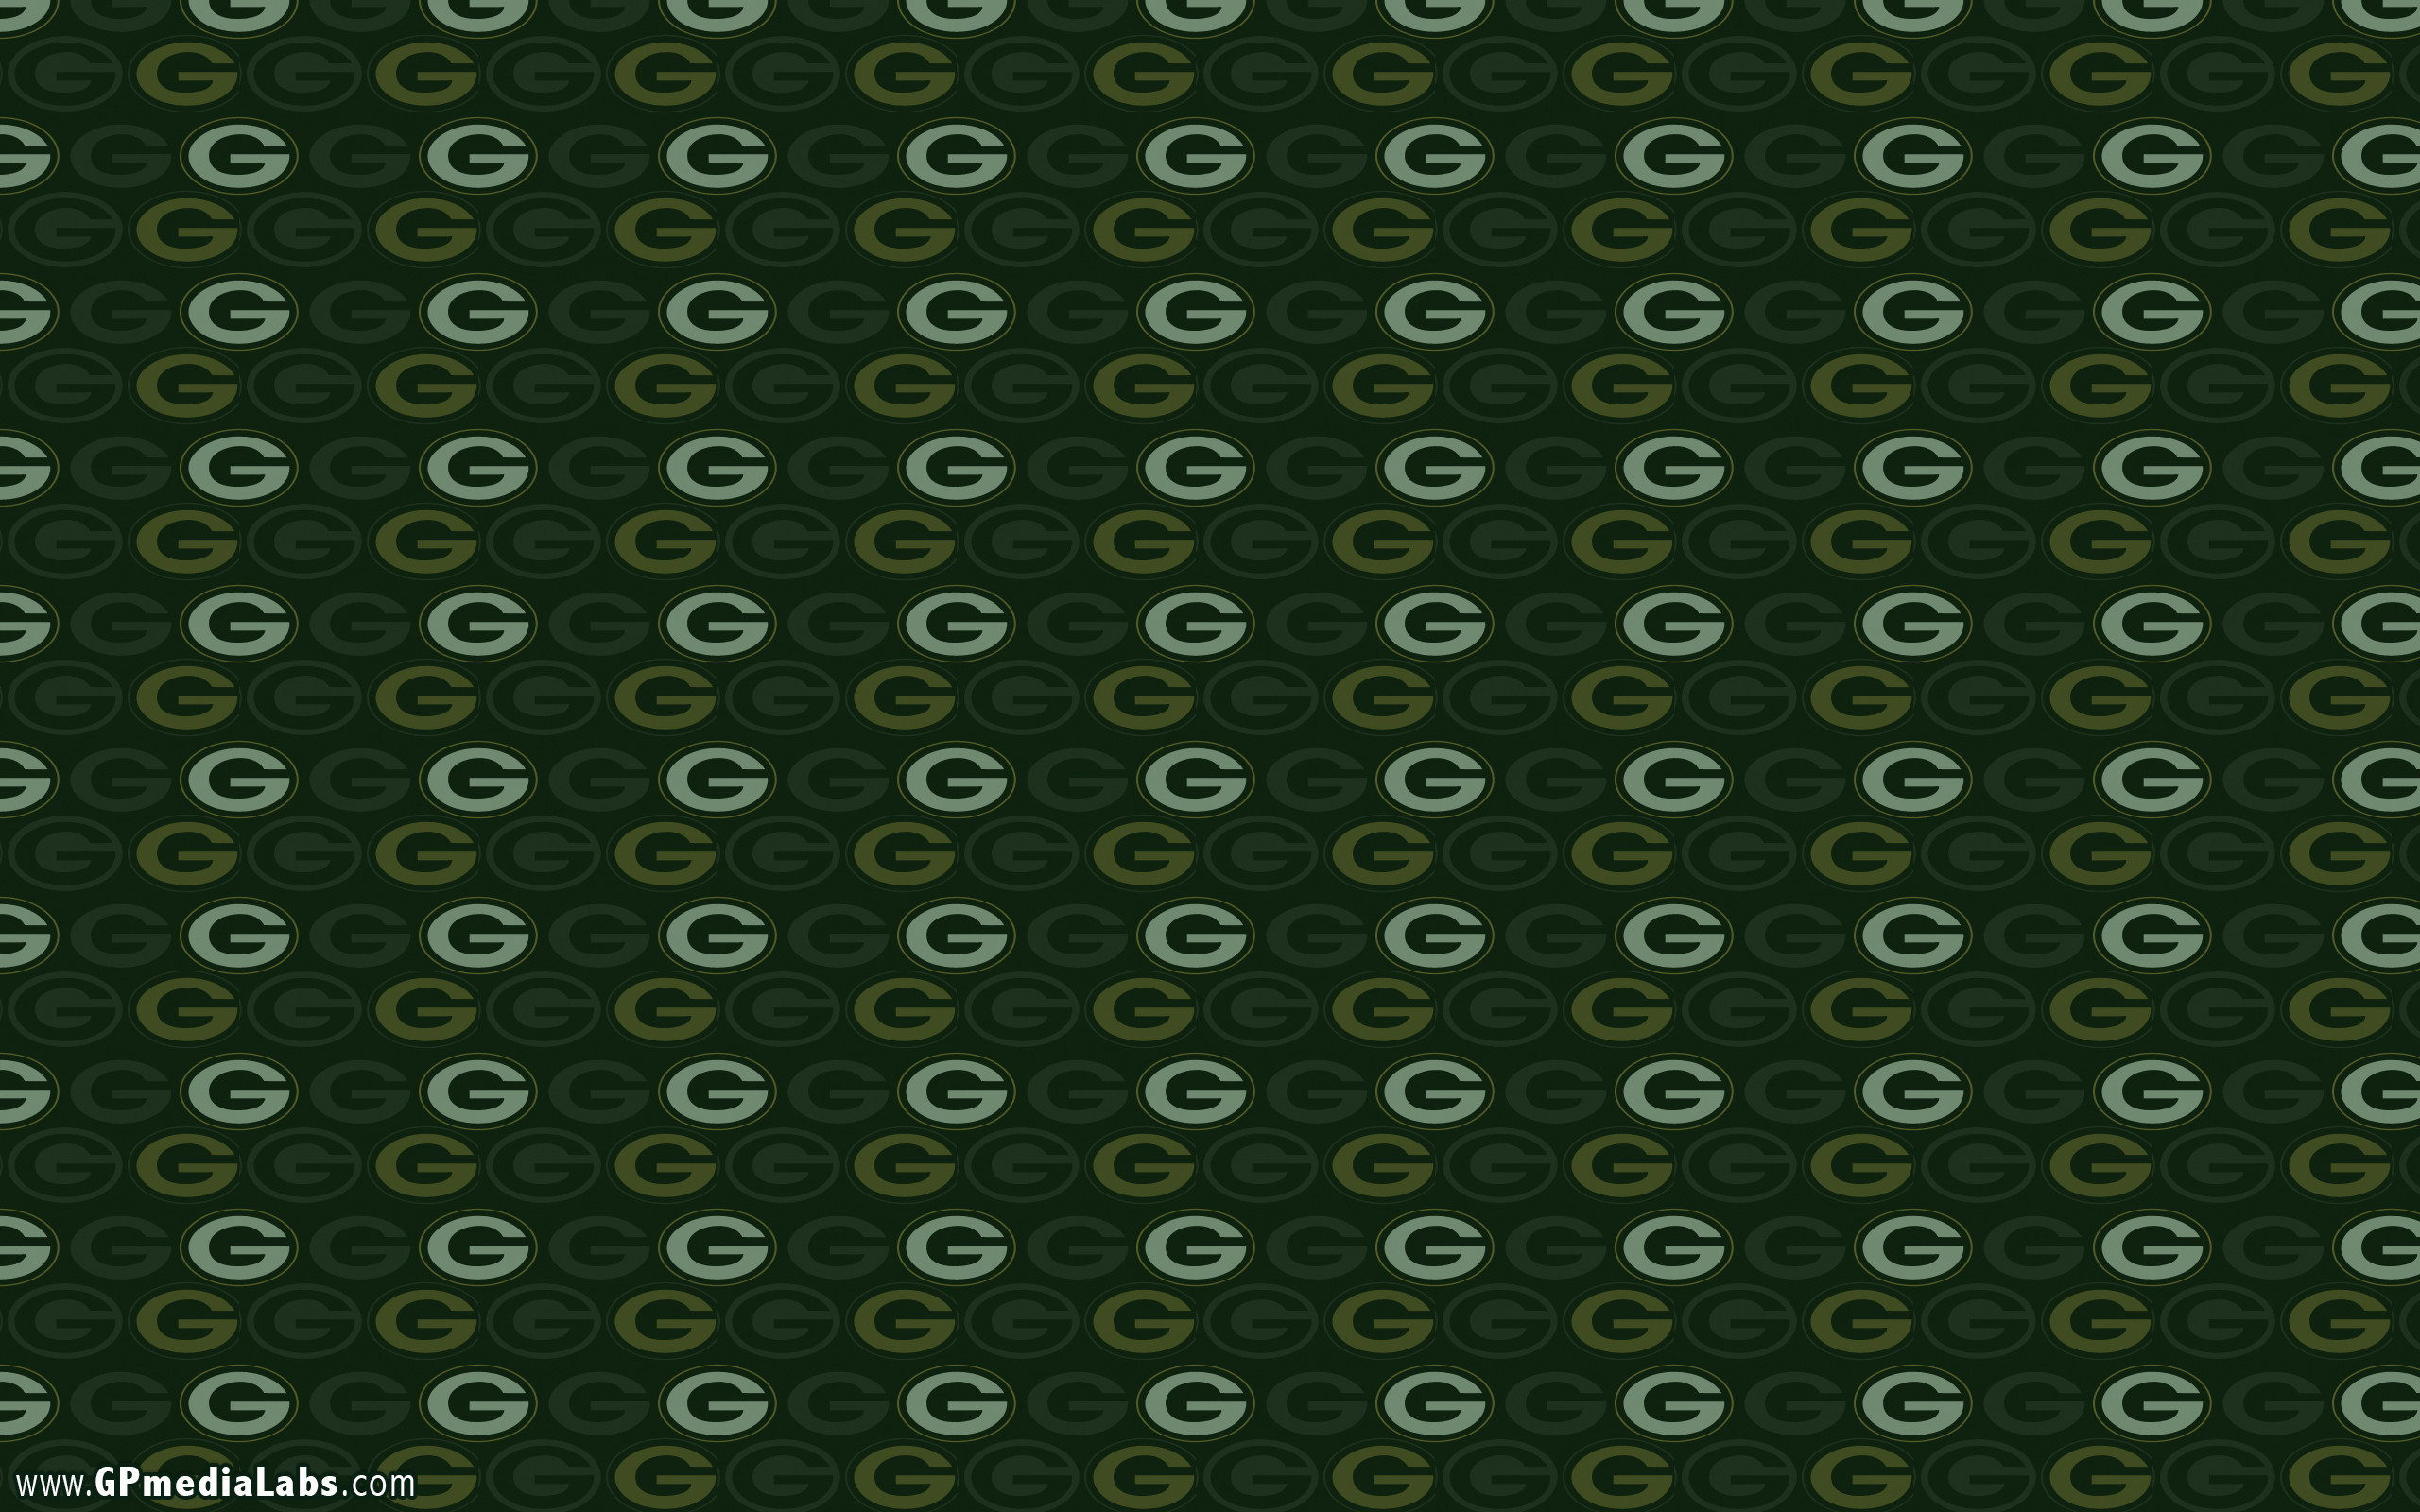 Download wallpaper: 1440 x 900 • 1920×1200 • 2560 x 1600. Green Bay Packers  Heat up the Frozen Tundra with Aaron Rodgers